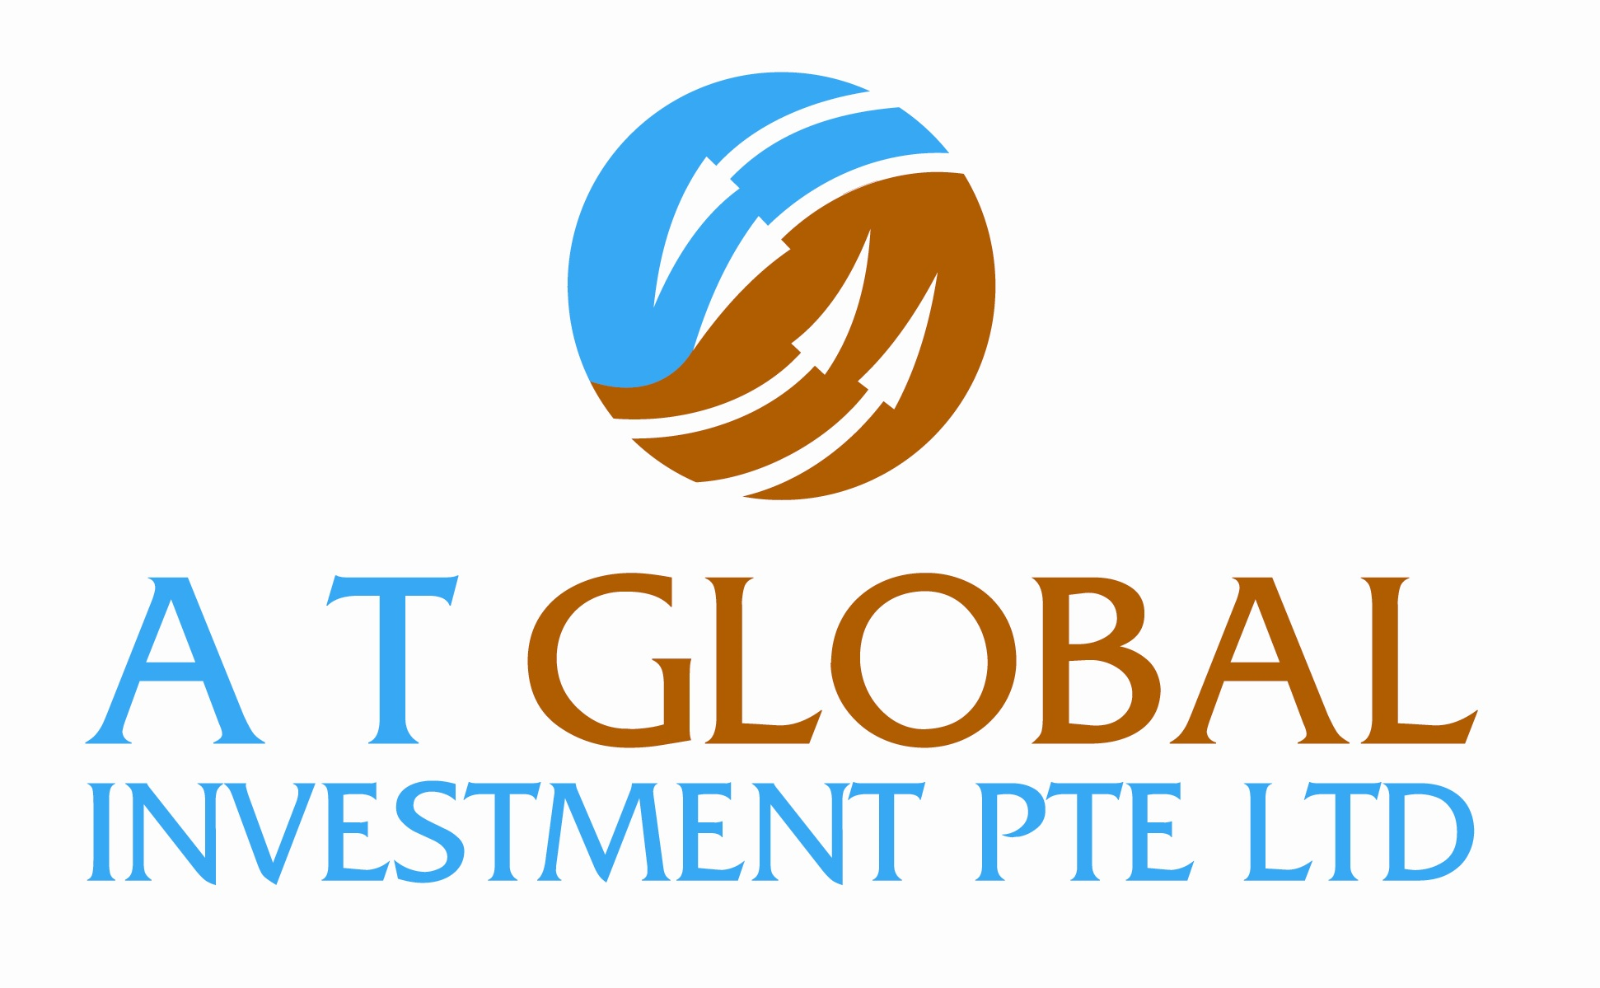 A T GLOBAL INVESTMENT PTE. LTD.